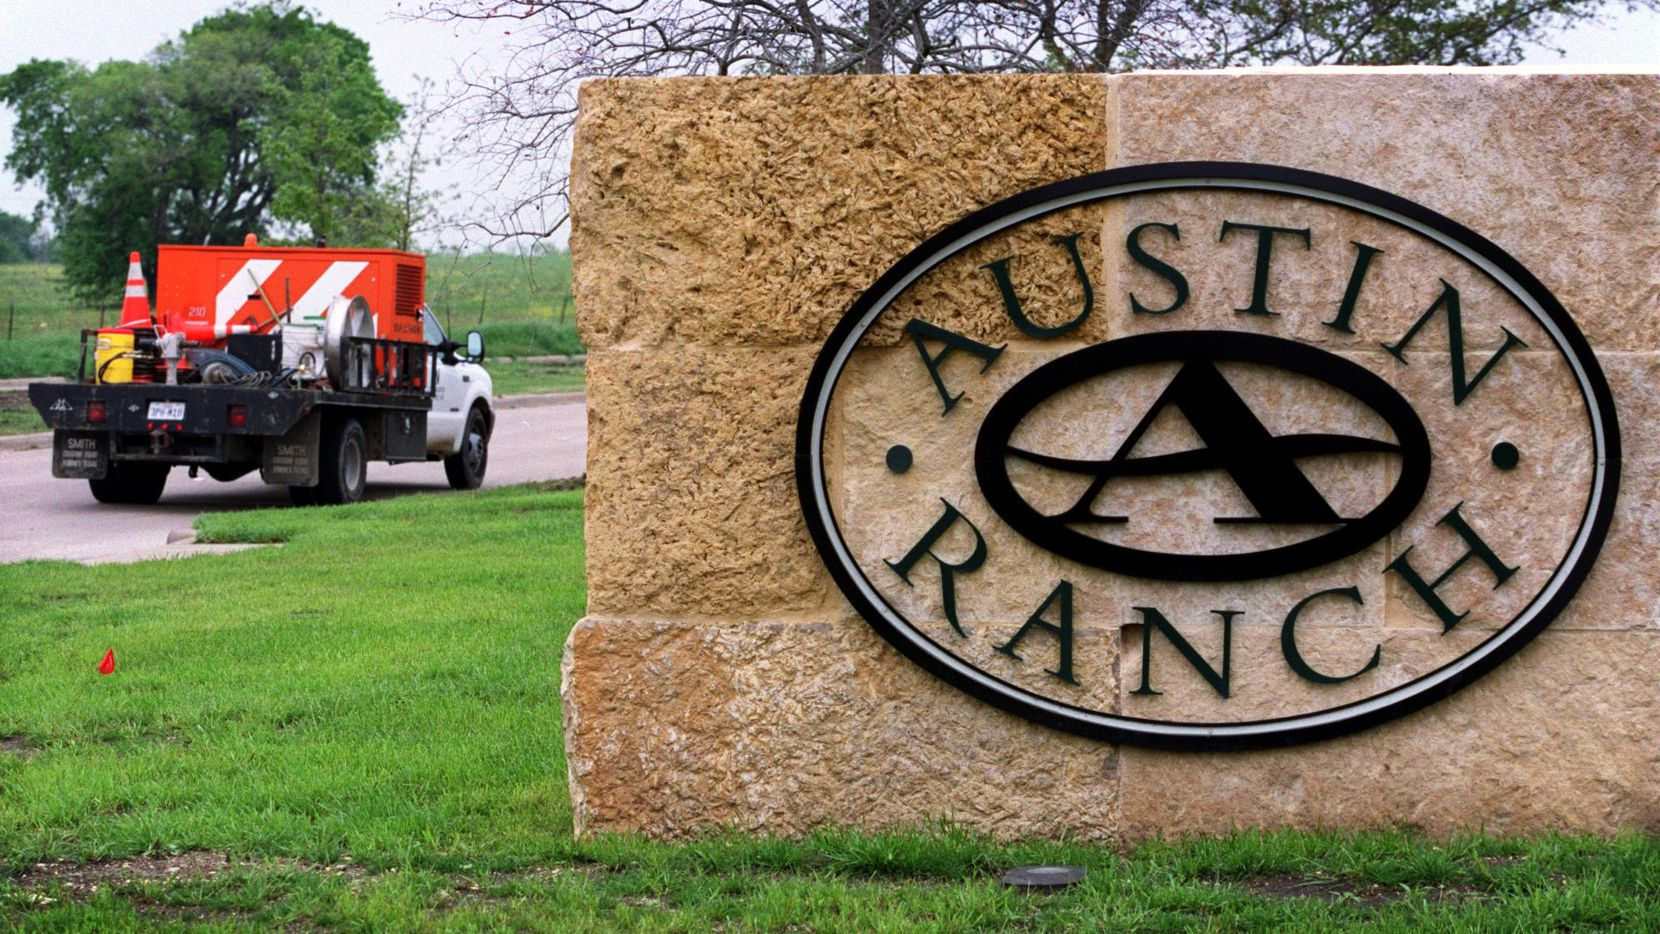 Austin Ranch is west of the Dallas North Tollway and has 1,700 acres.